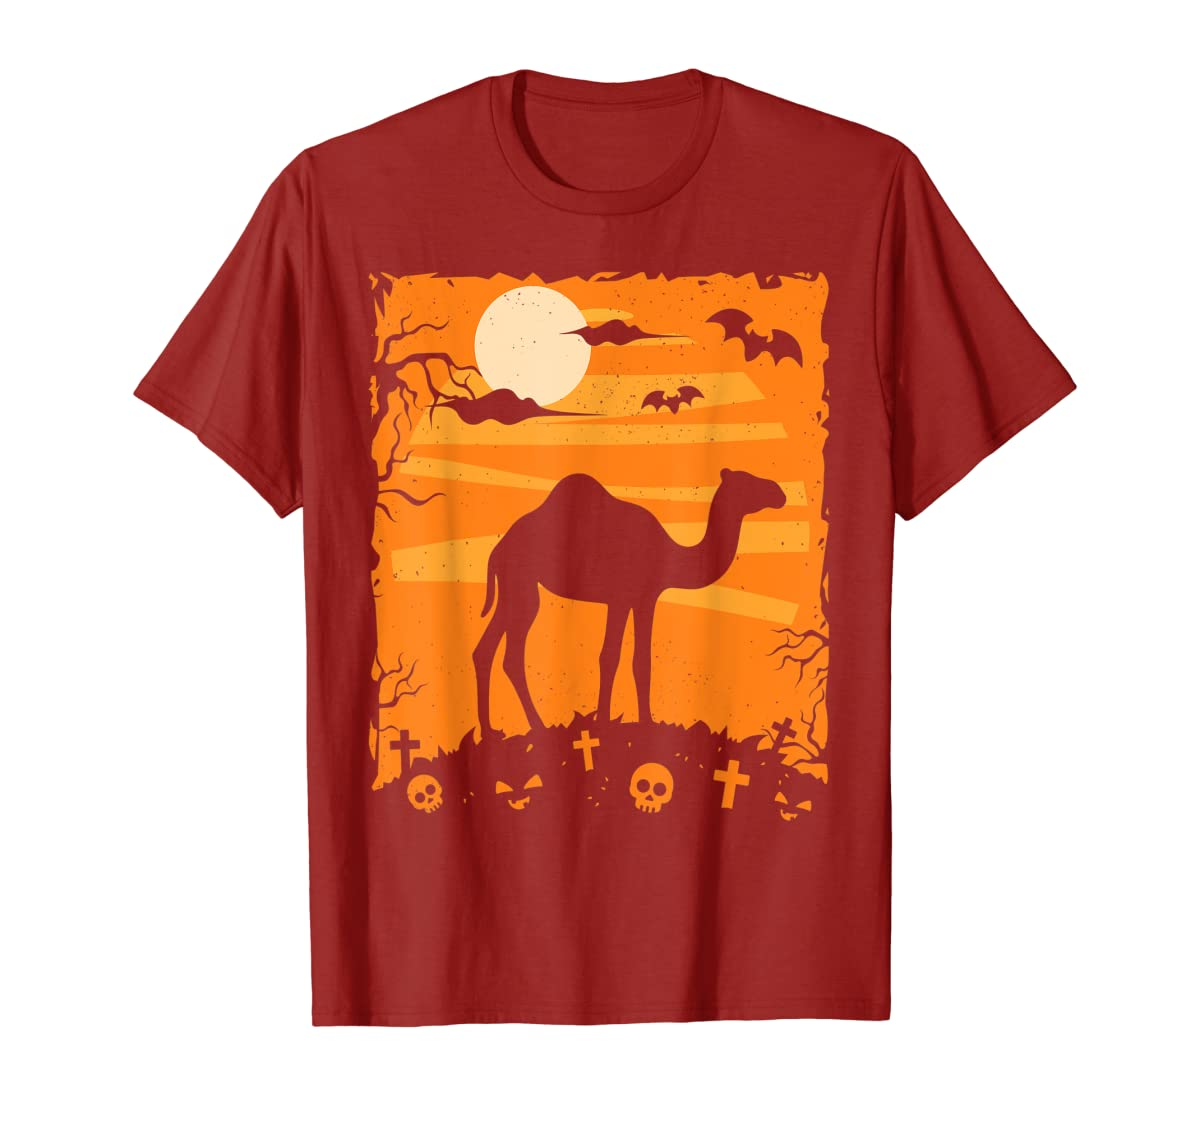 Camel Halloween Costume Animal Funny Pumpkin Outfit Gift T-Shirt-Men's T-Shirt-Red